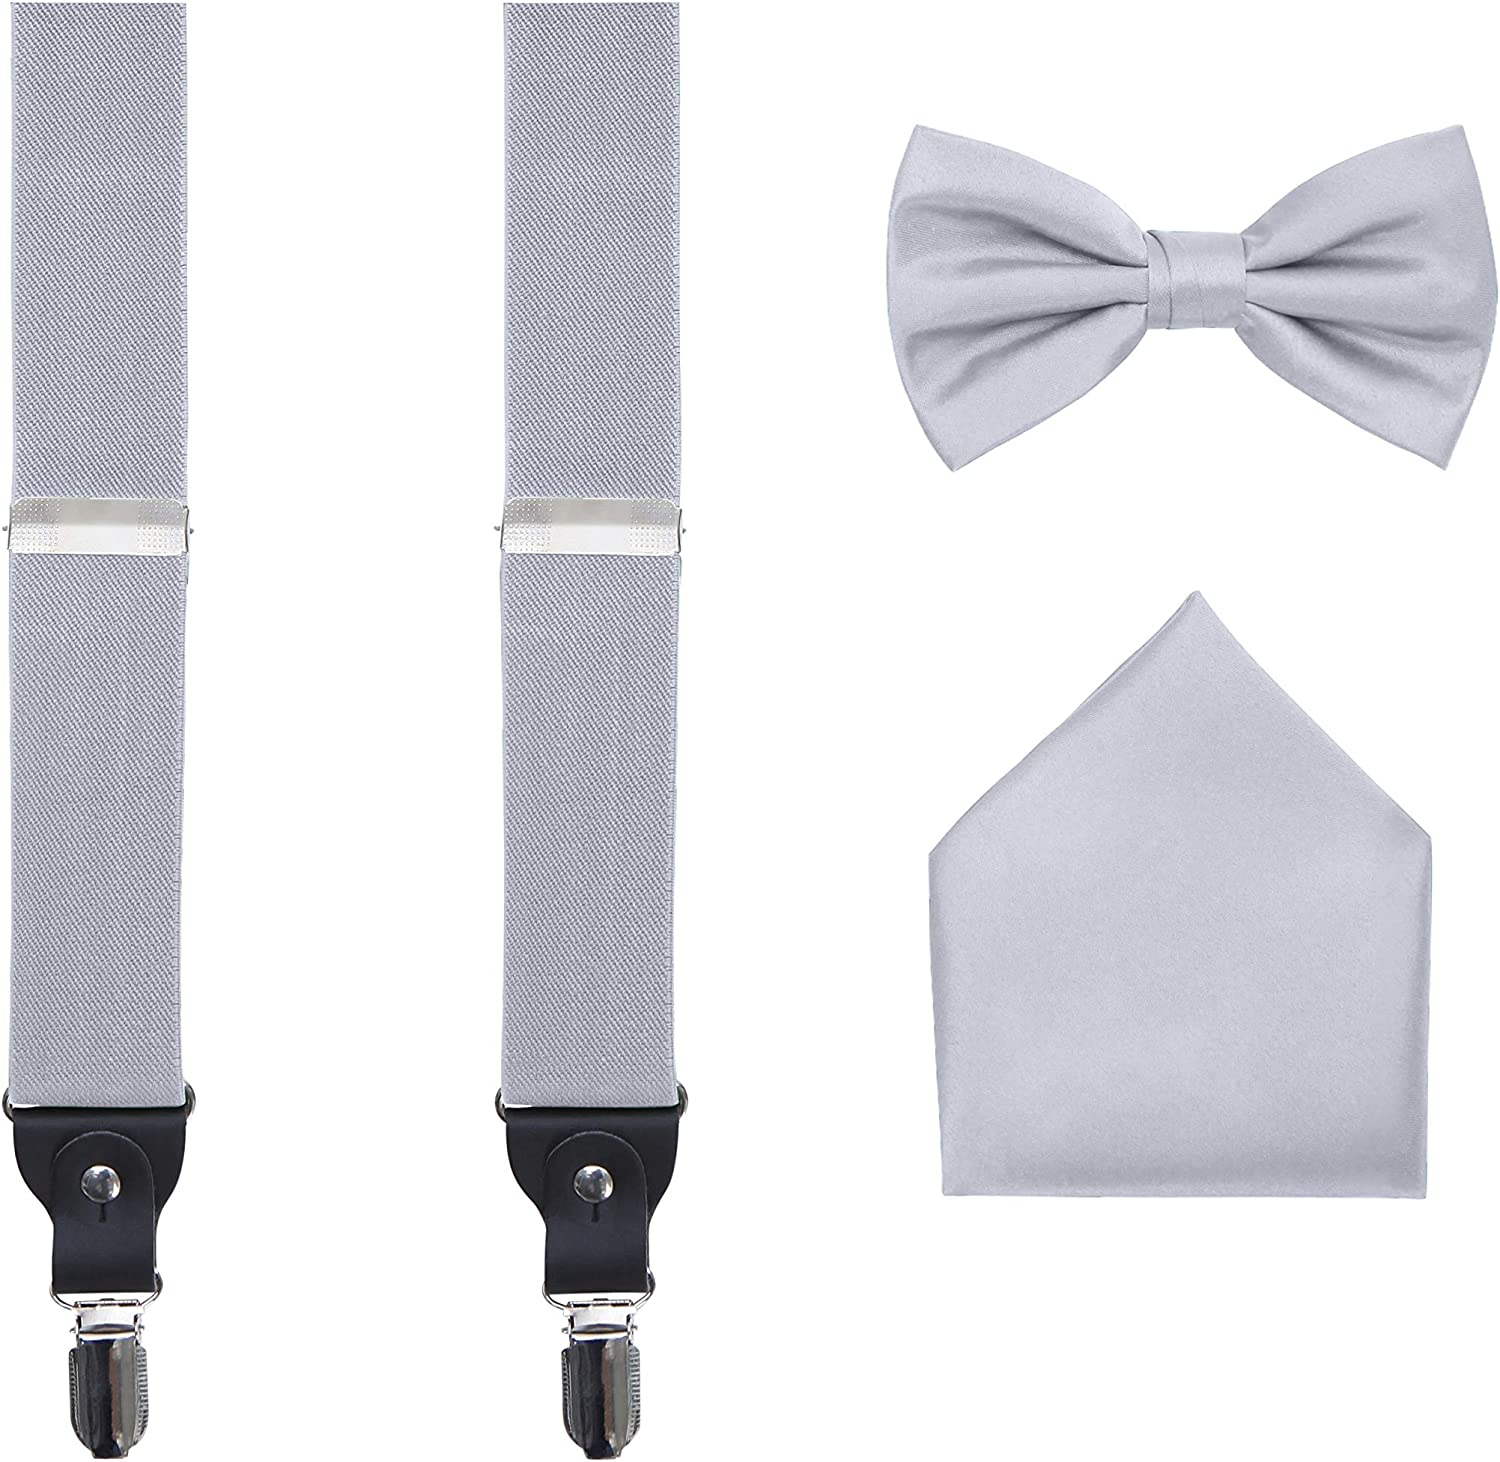 Men's 3 Piece Suspender Set - Includes Suspenders, Matching Bow Tie, Pocket Hanky and Gift Box